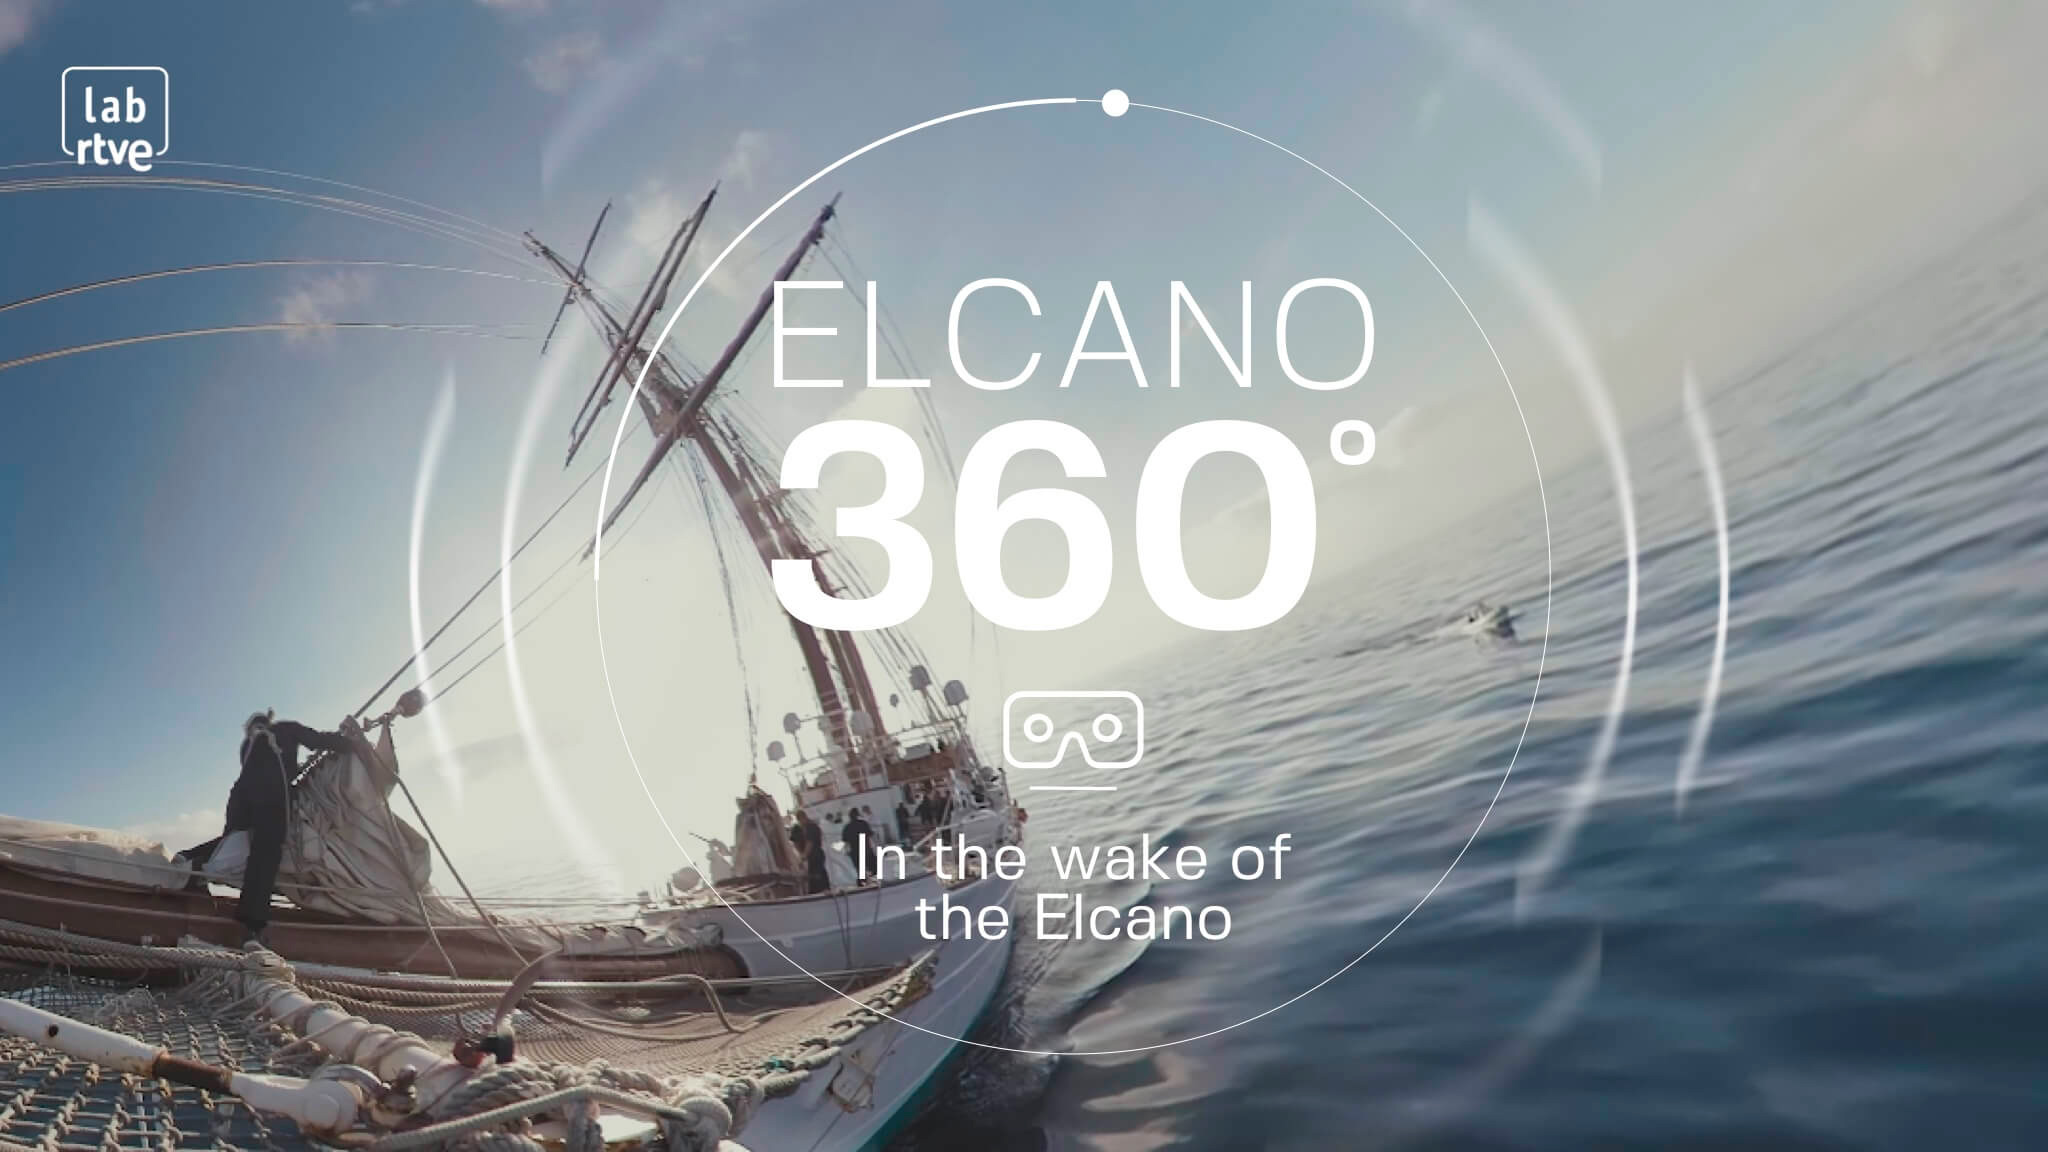 In the wake of the Elcano: A 360° voyage